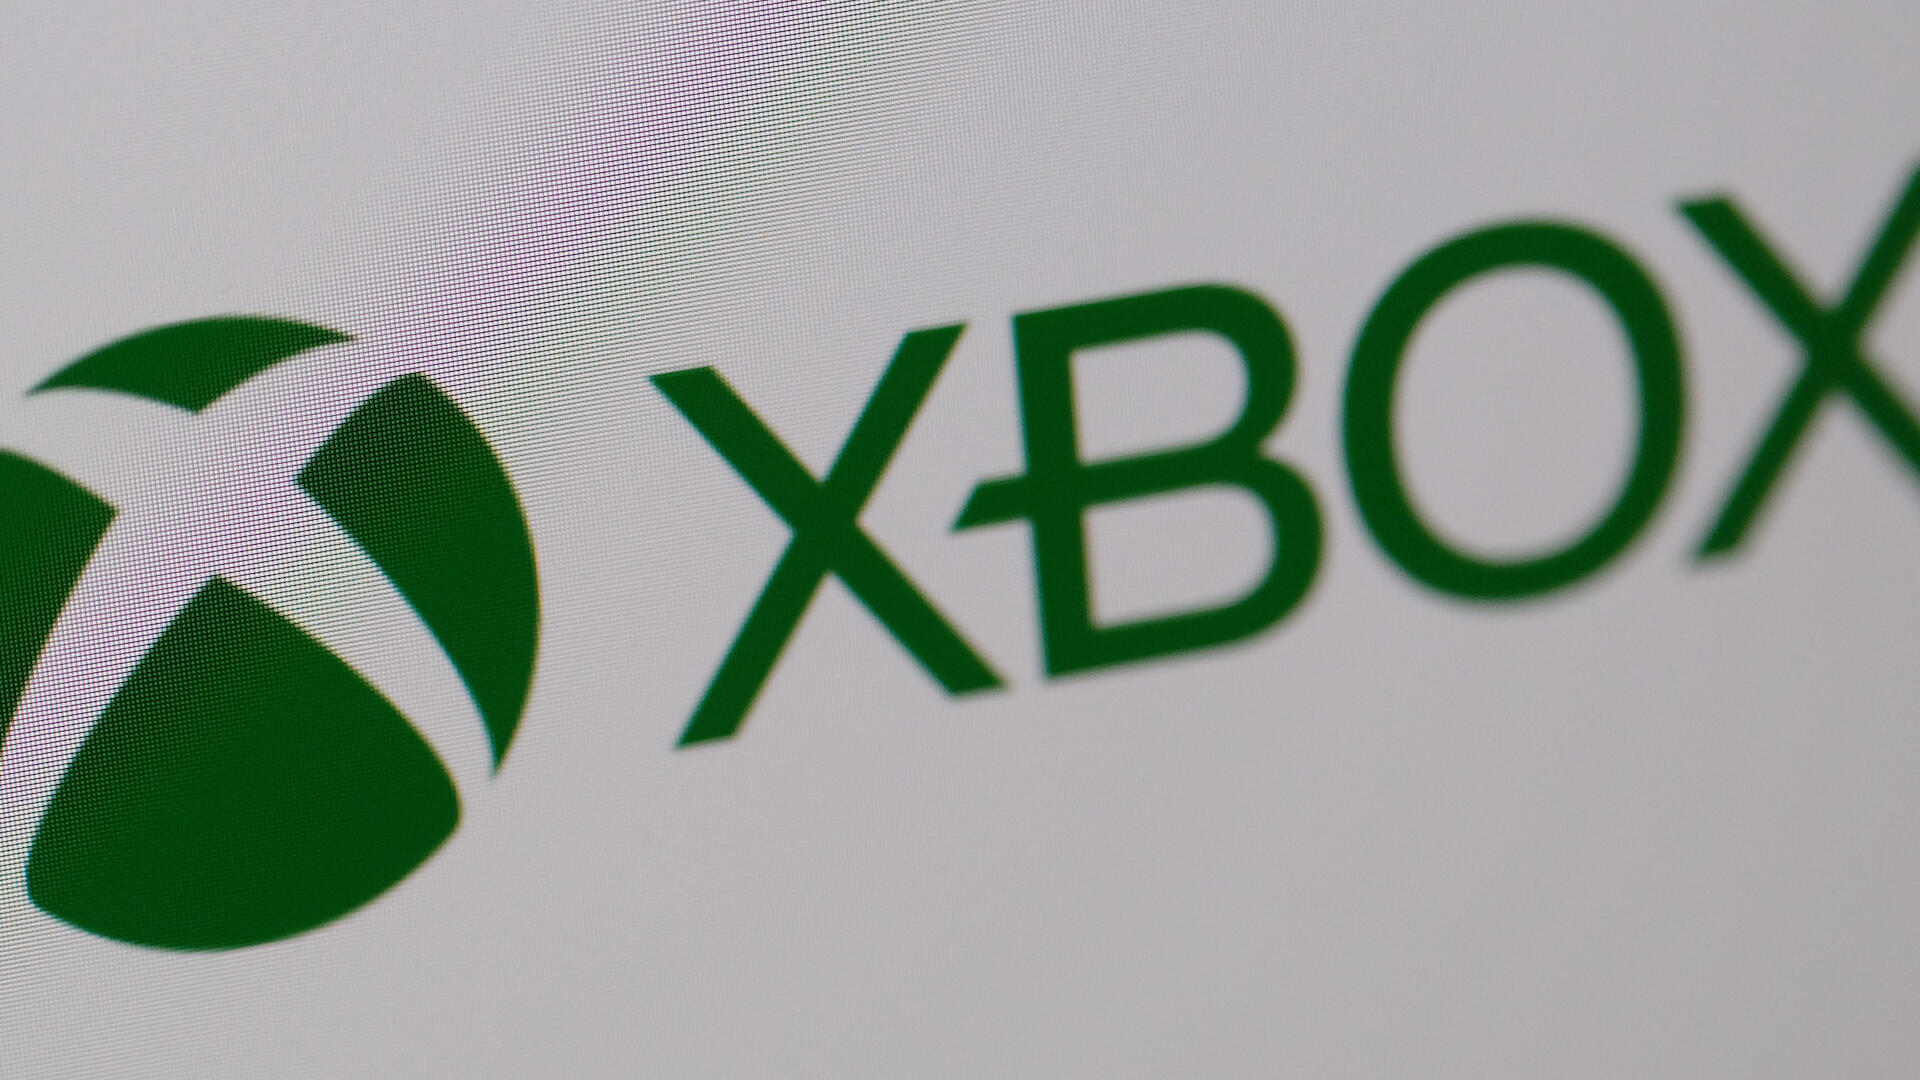 Video: Microsoft puts Xbox in more things, meat producer pays millions in ransomware attack